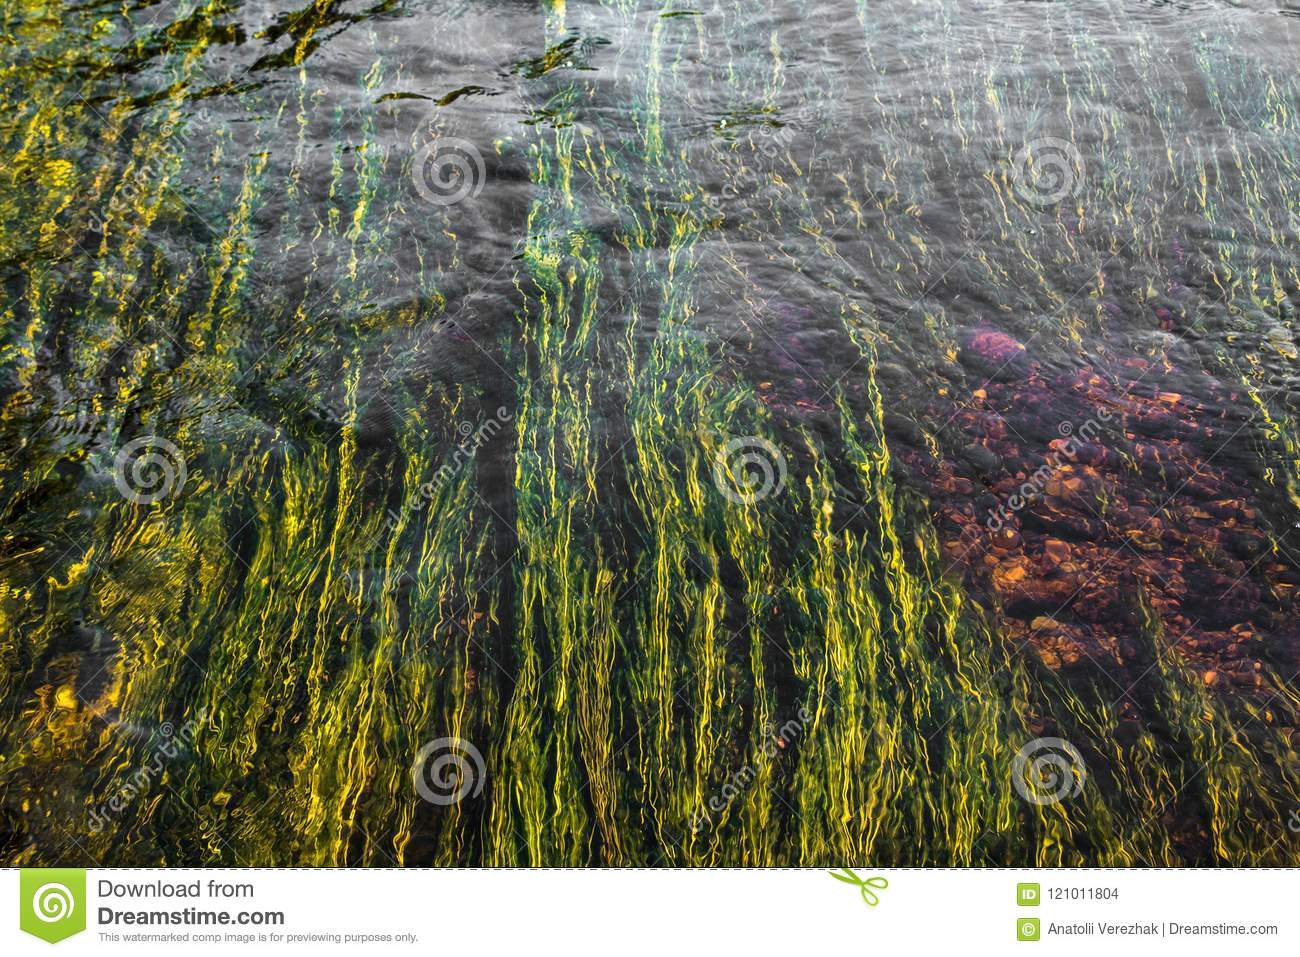 Art of green river weed in red rock bottom river